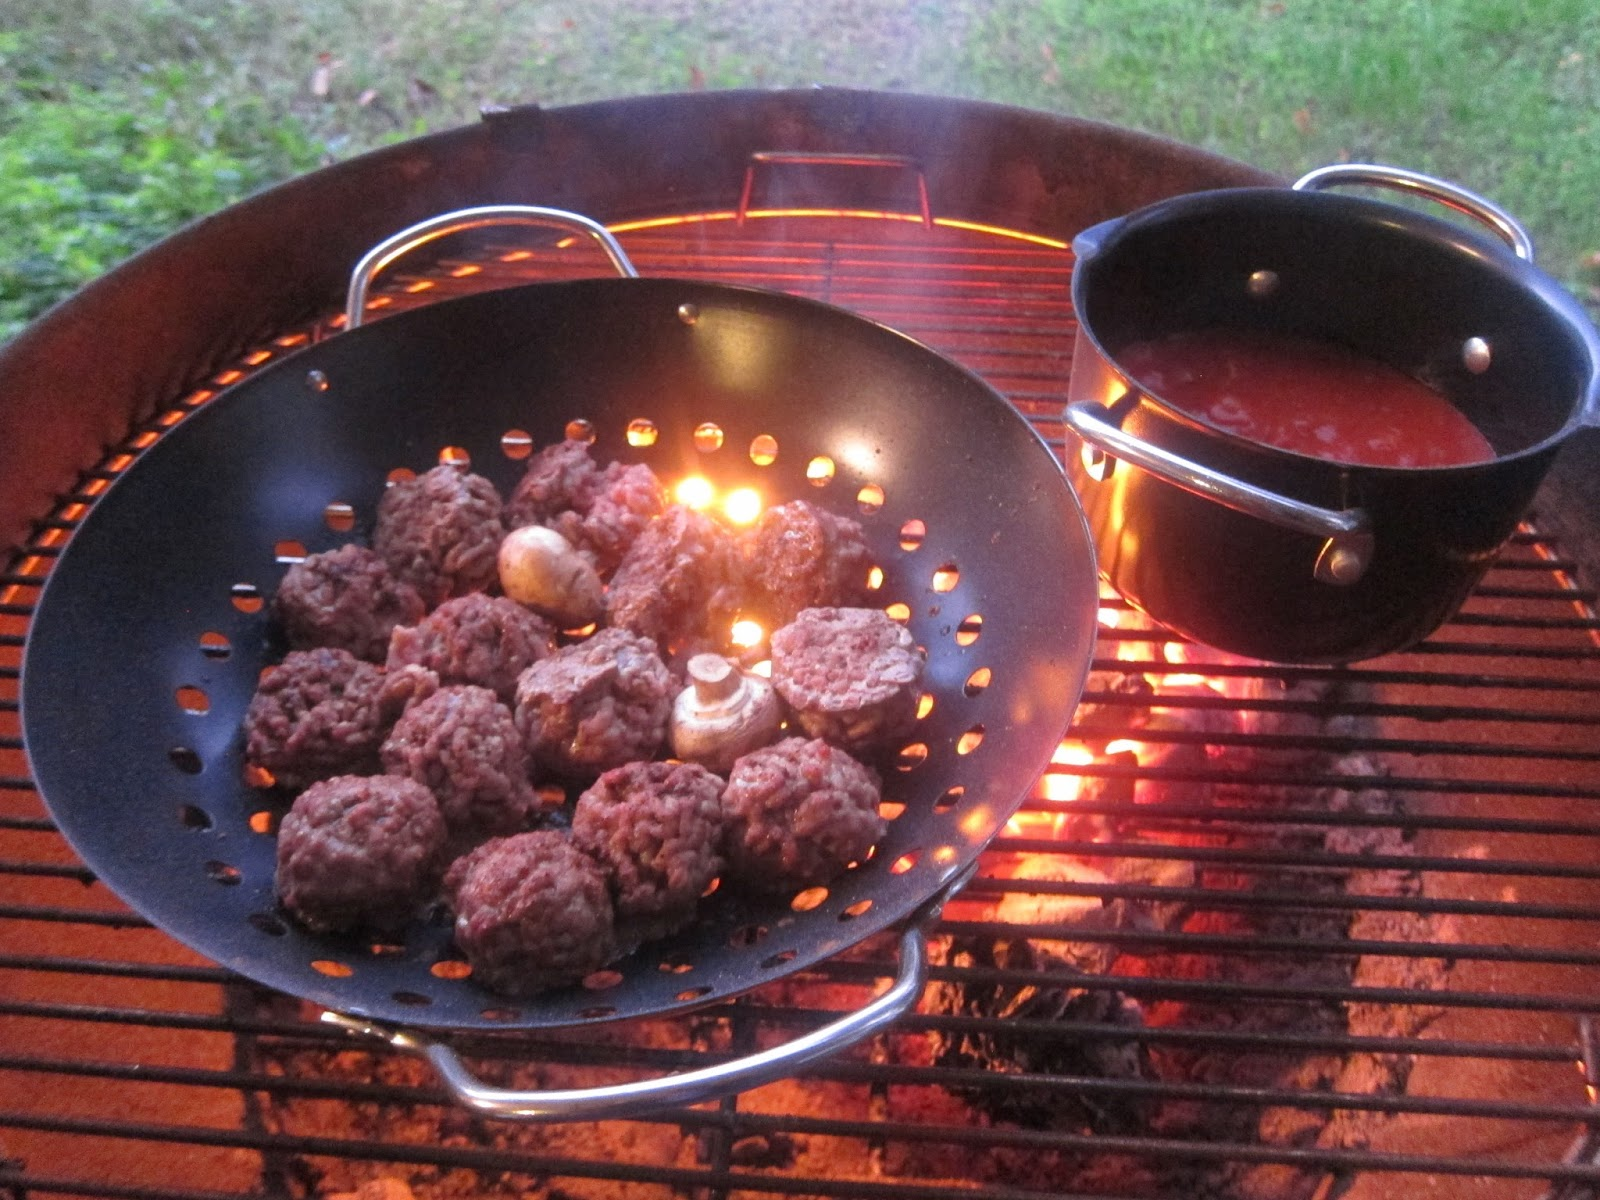 barbecue master bertolli sauce and smoked meatballs on